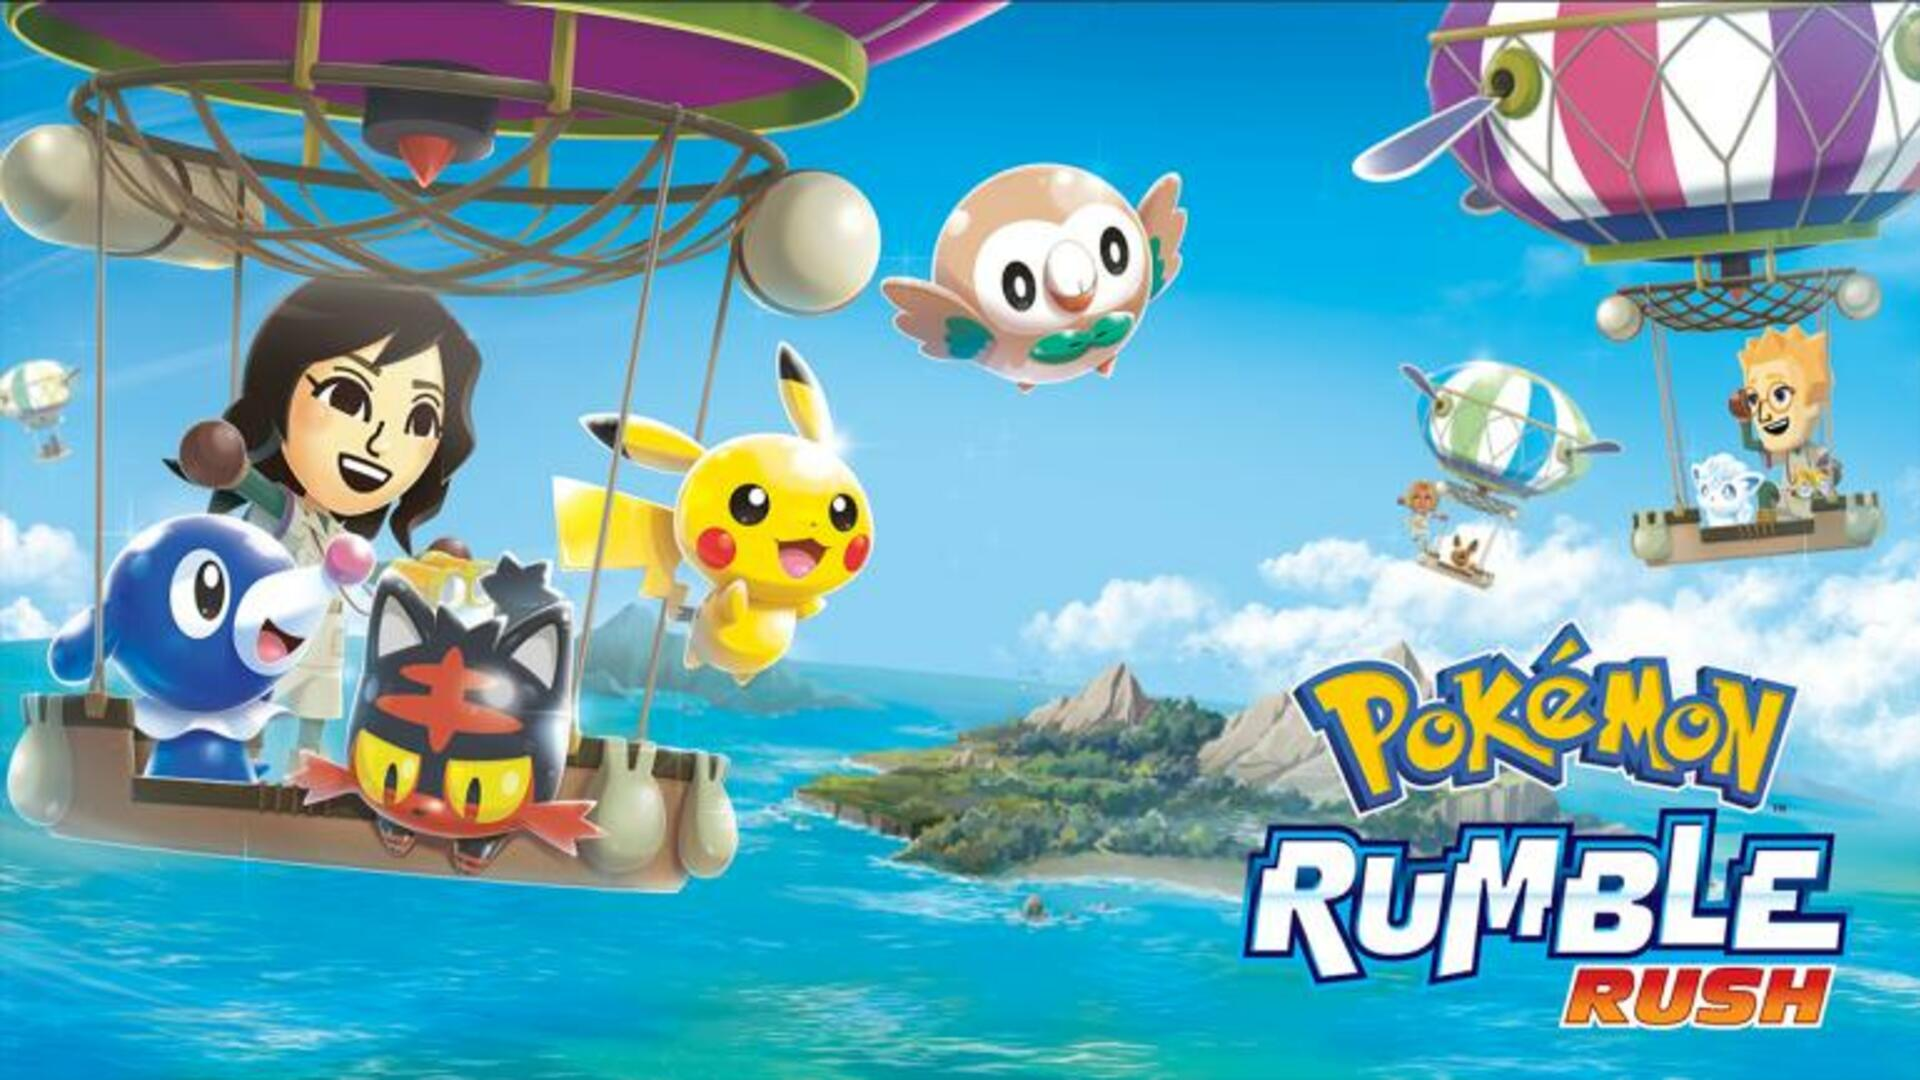 Pokemon Rumble Rush Tips - Controls, Auto-Attack, Is it Just Gen 1?